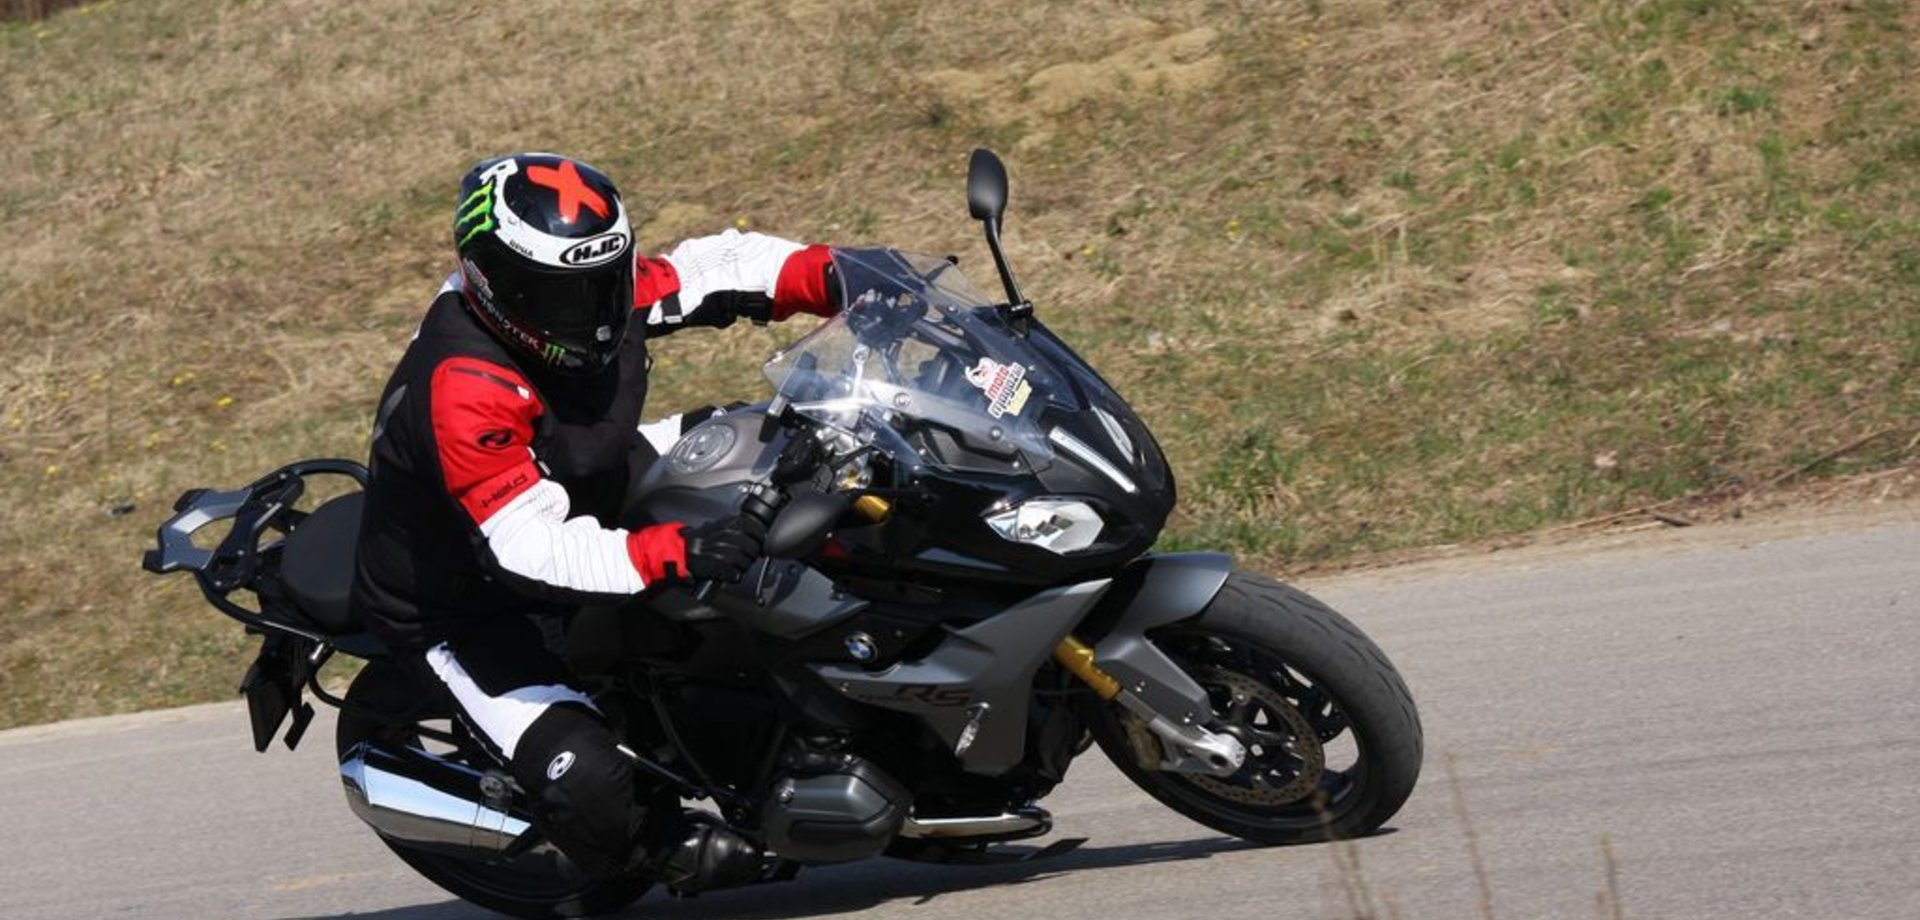 Test: BMW R 1200 RS